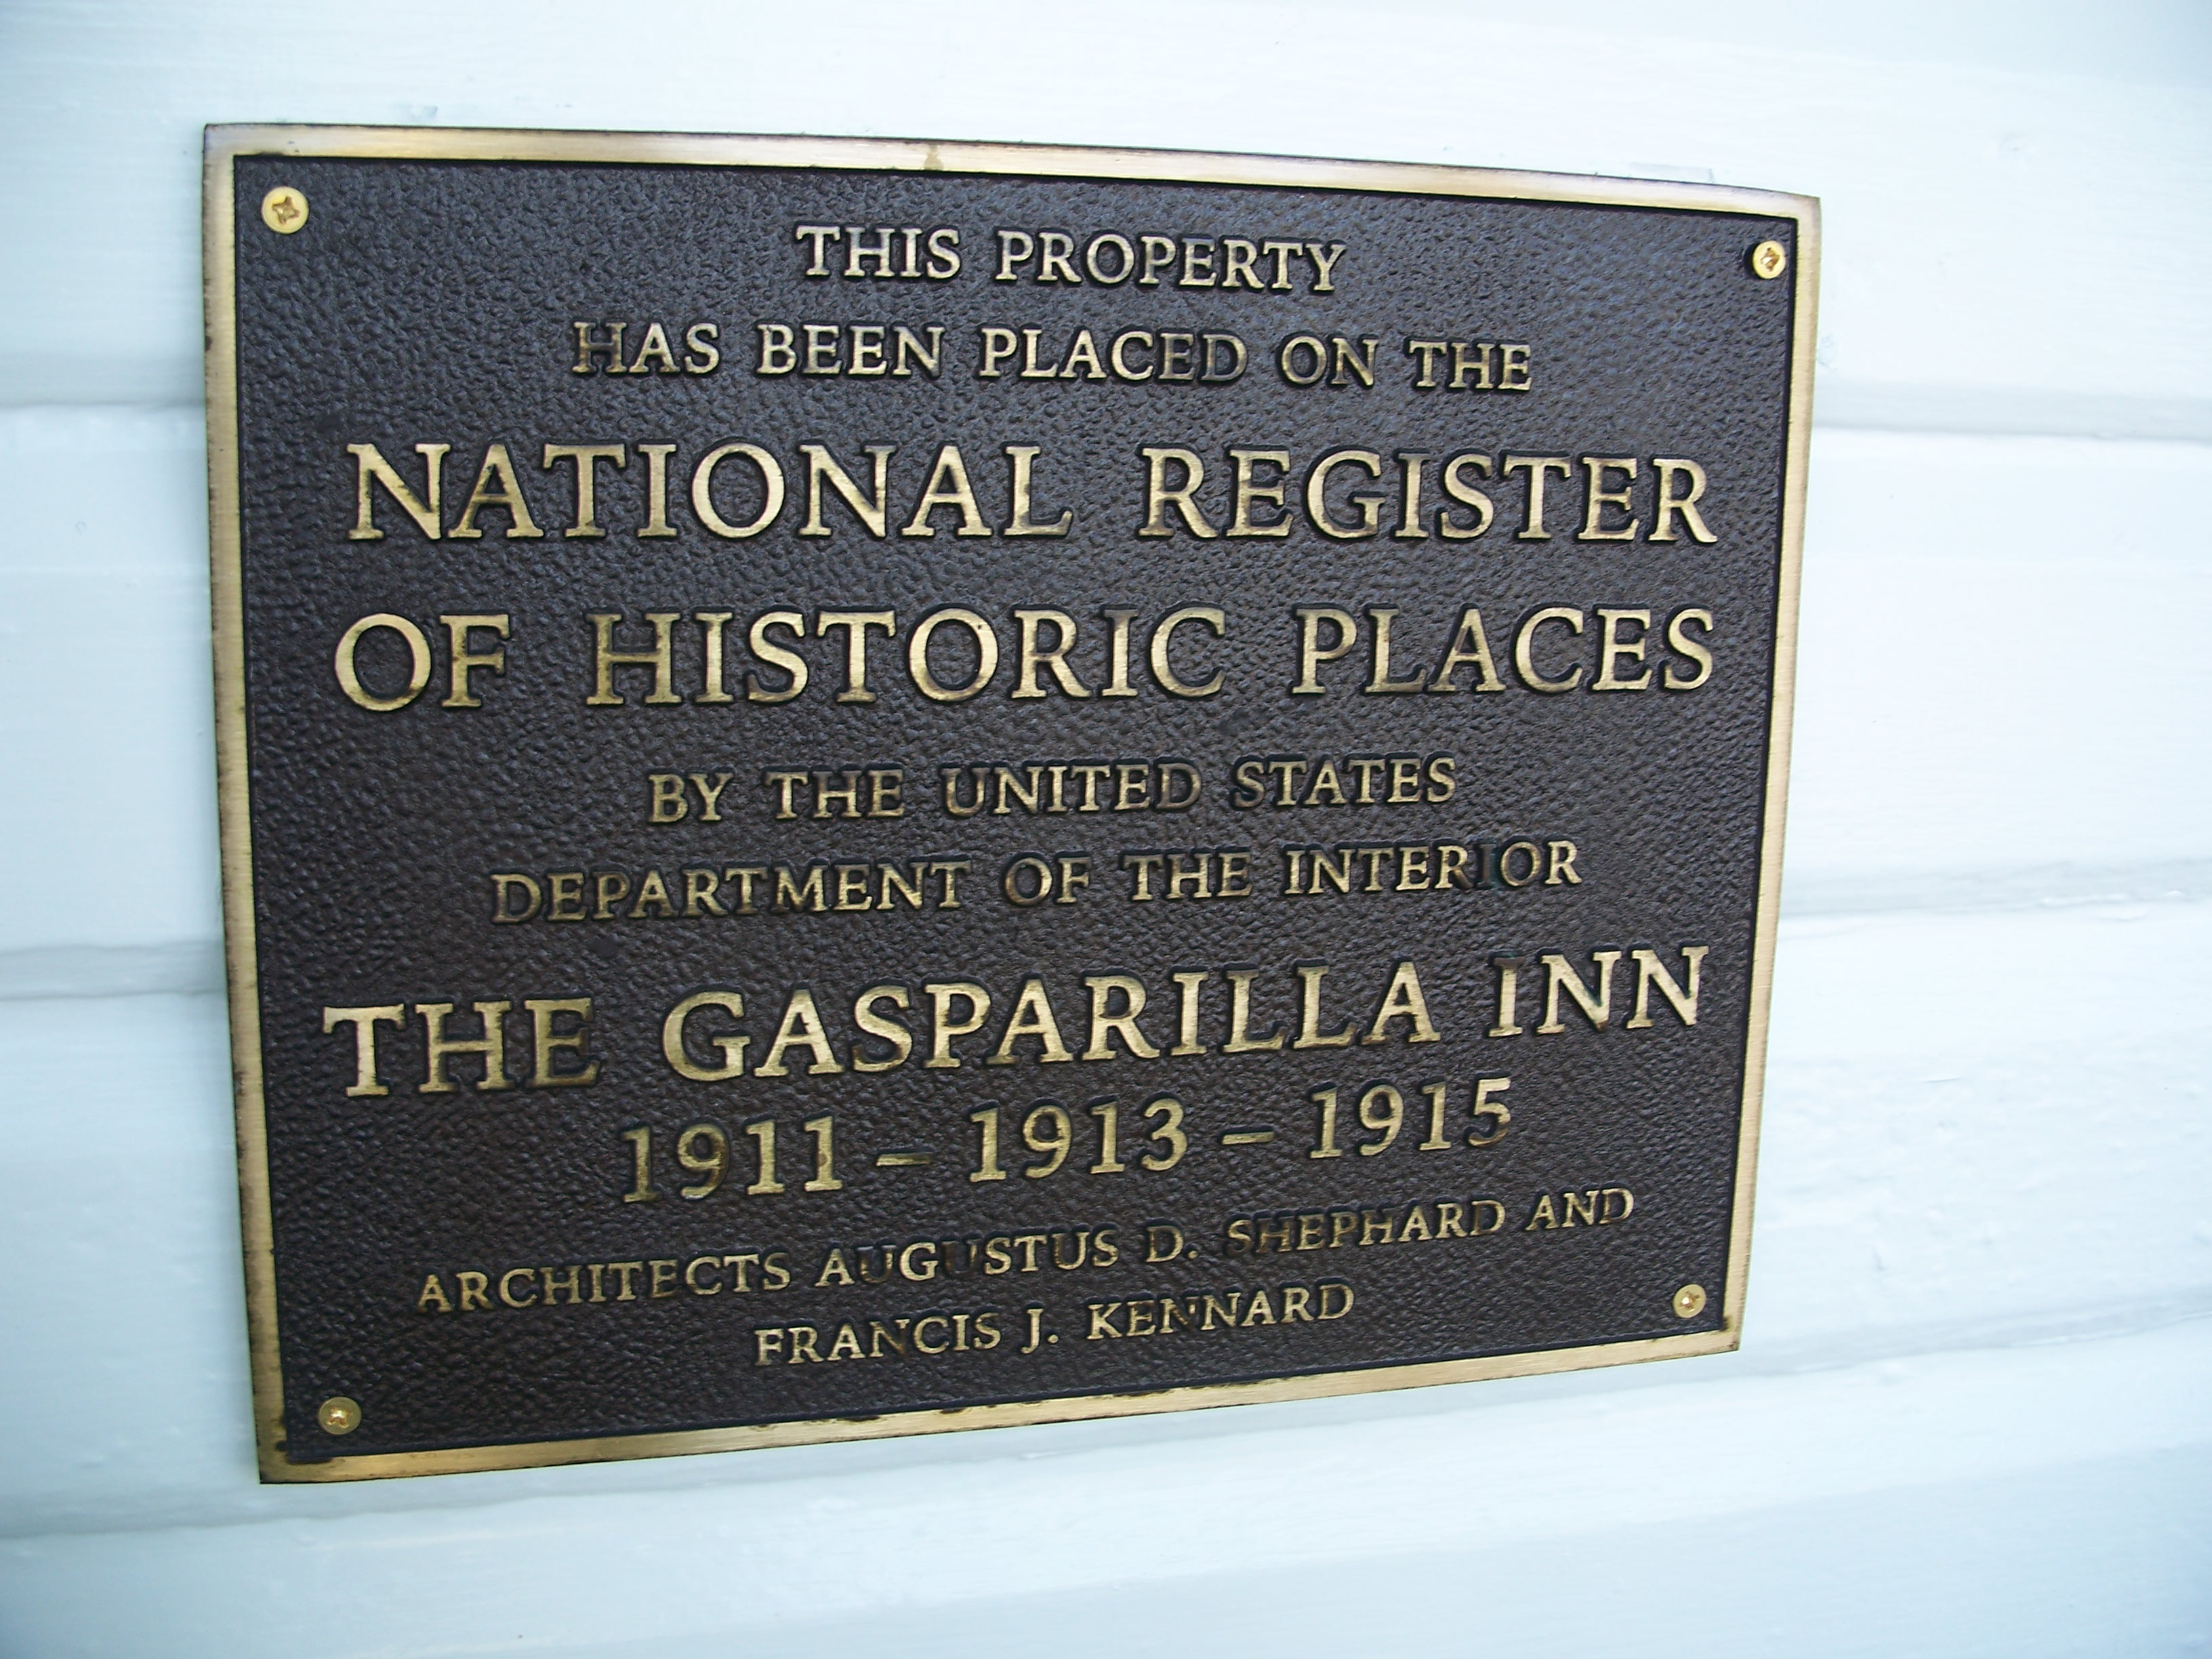 Image result for wiki commons pictures of the Gasparilla Inn